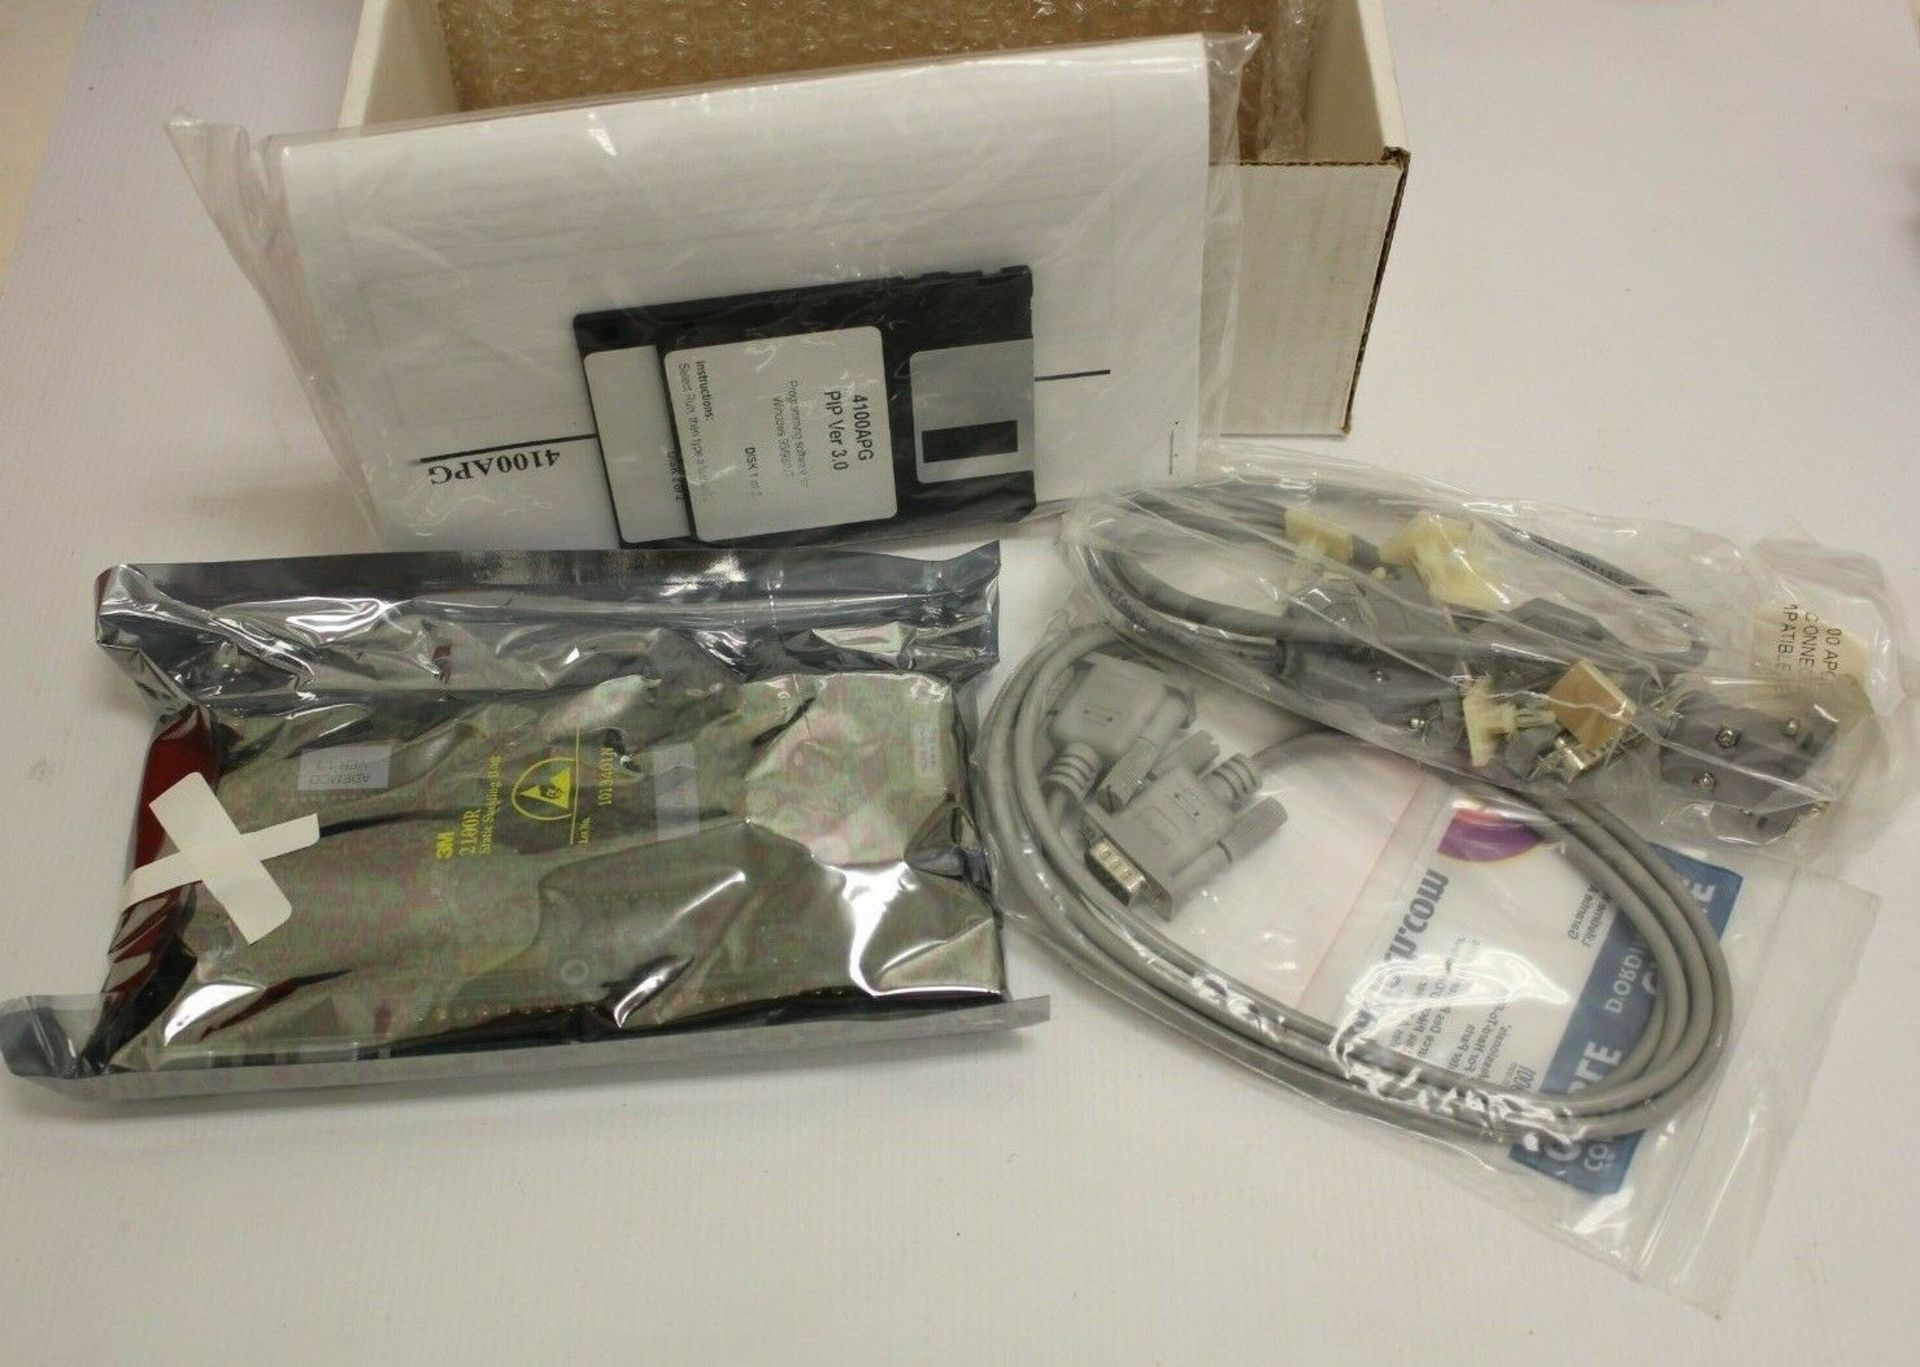 NEW ADEMCO AUTOMATED PAGING INTERFACE KIT